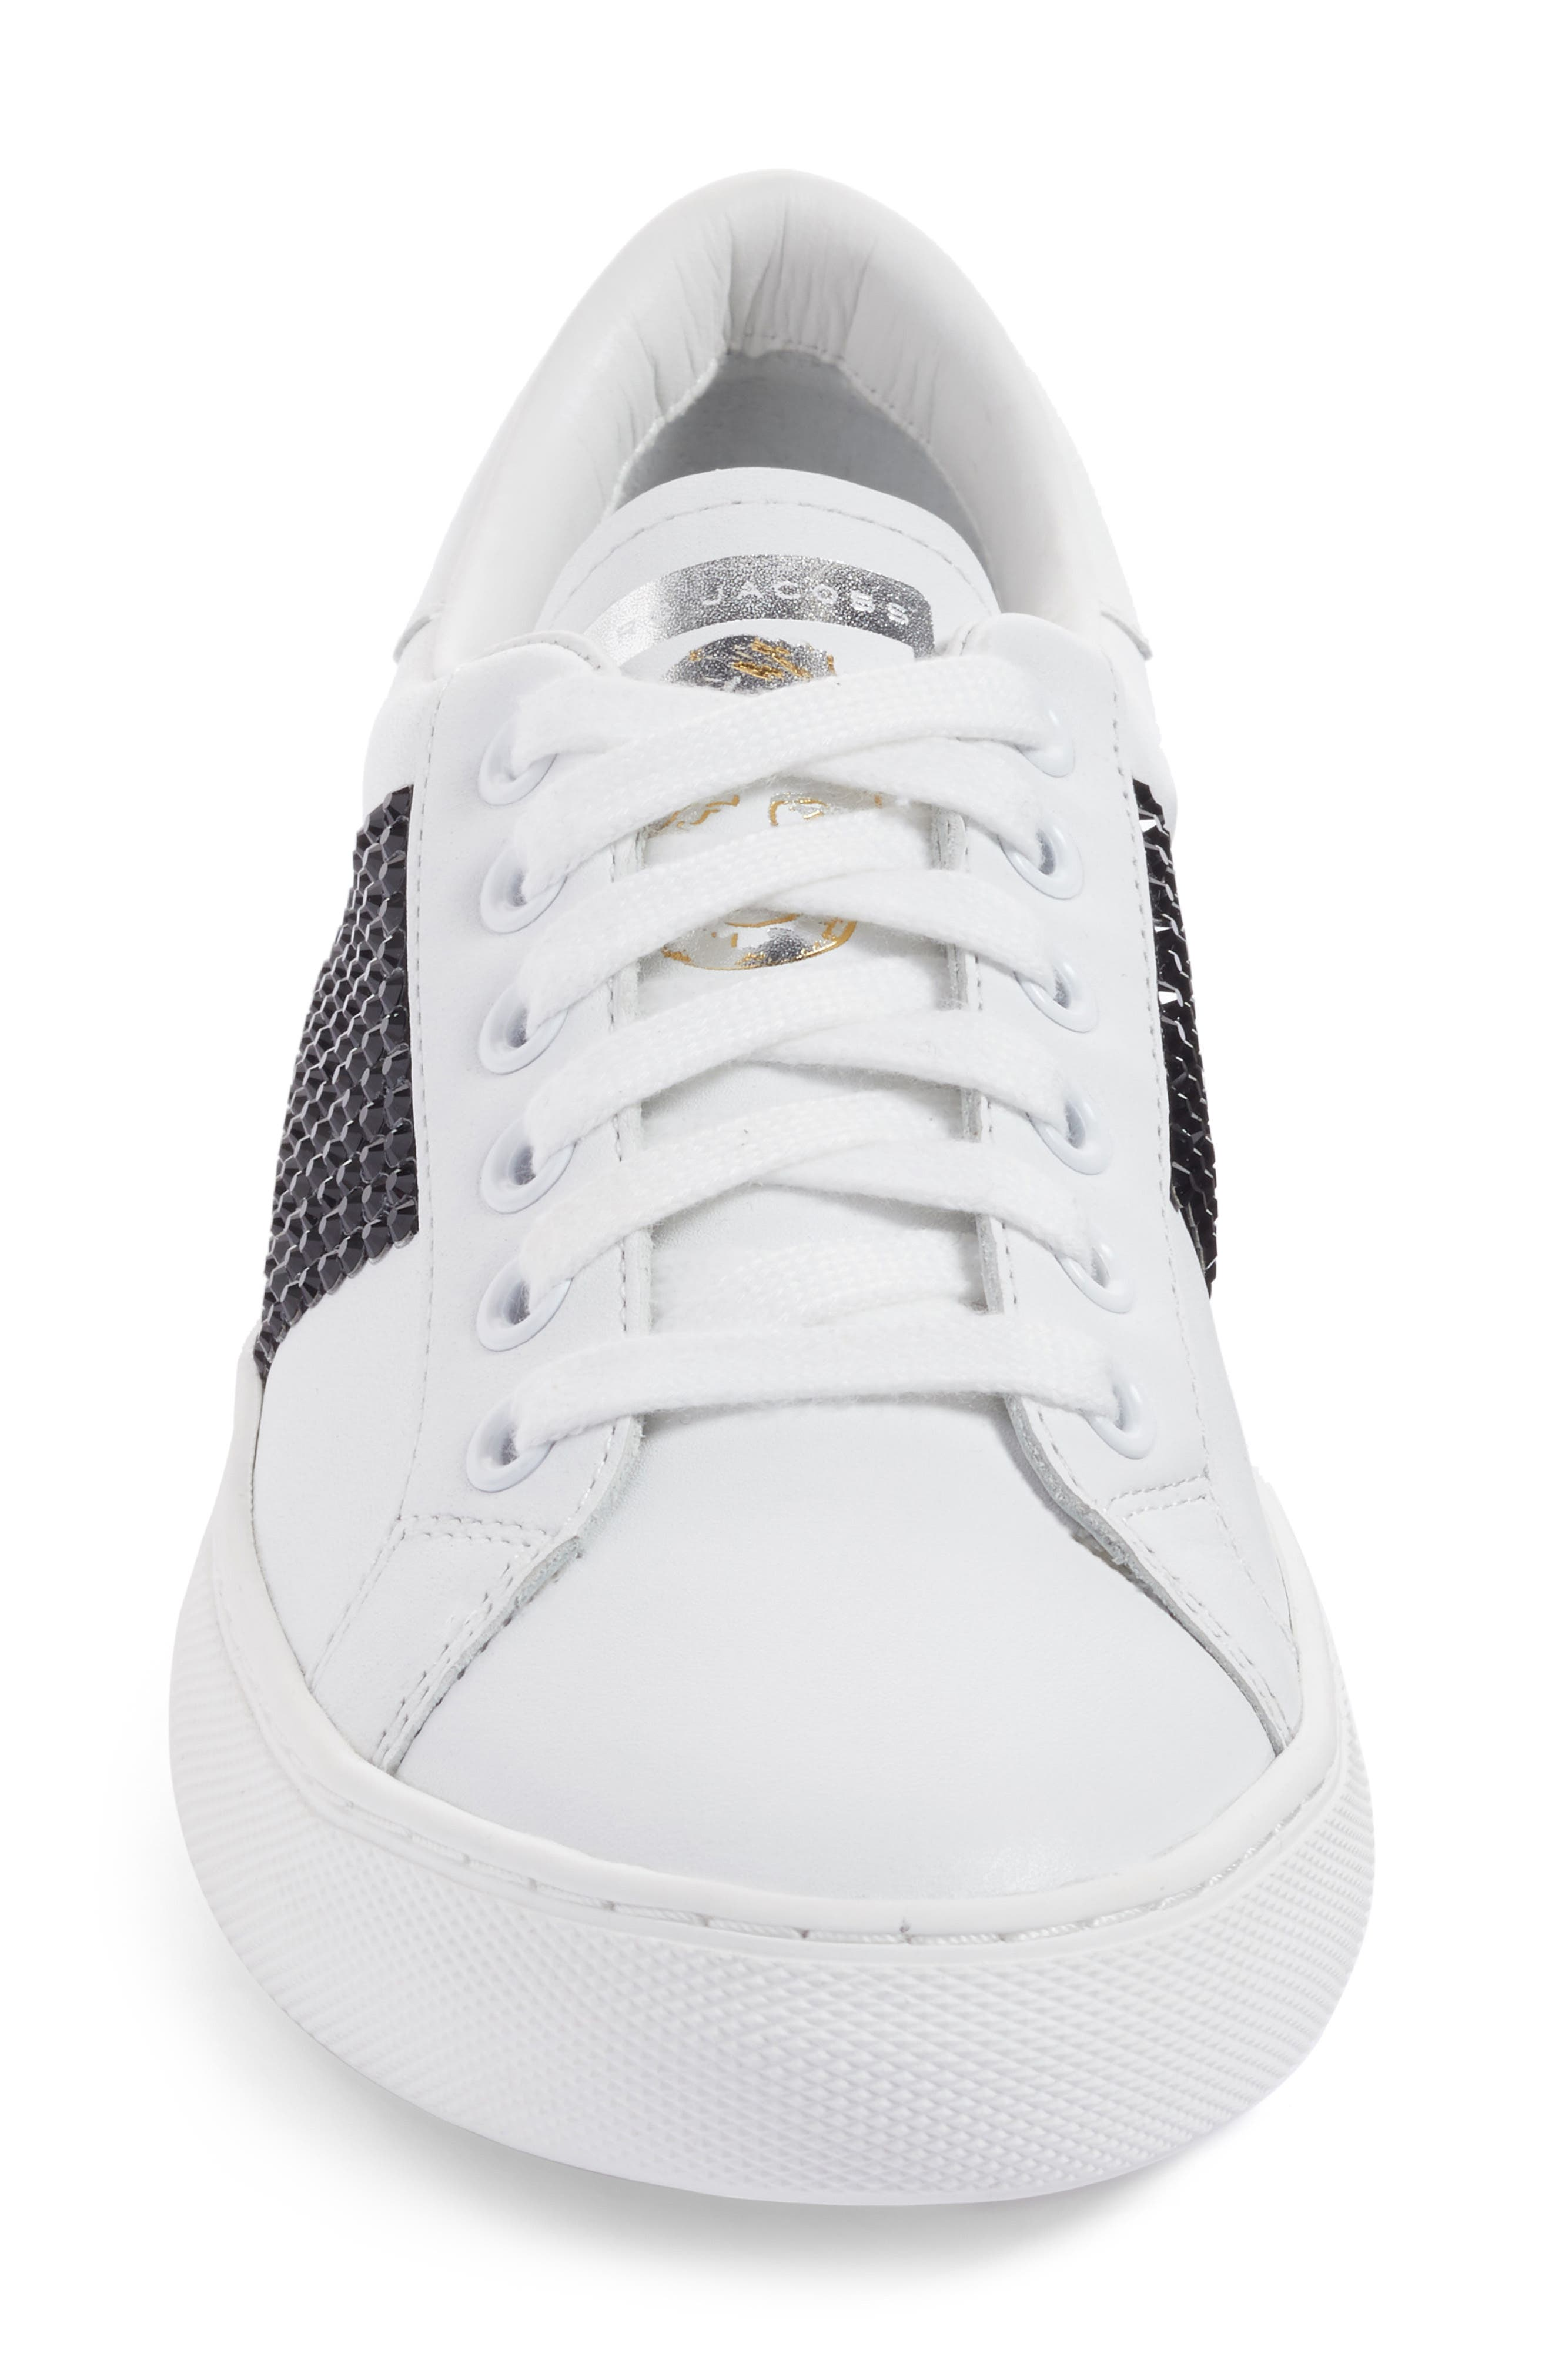 Alternate Image 4  - MARC JACOBS Empire Embellished Sneaker (Women)